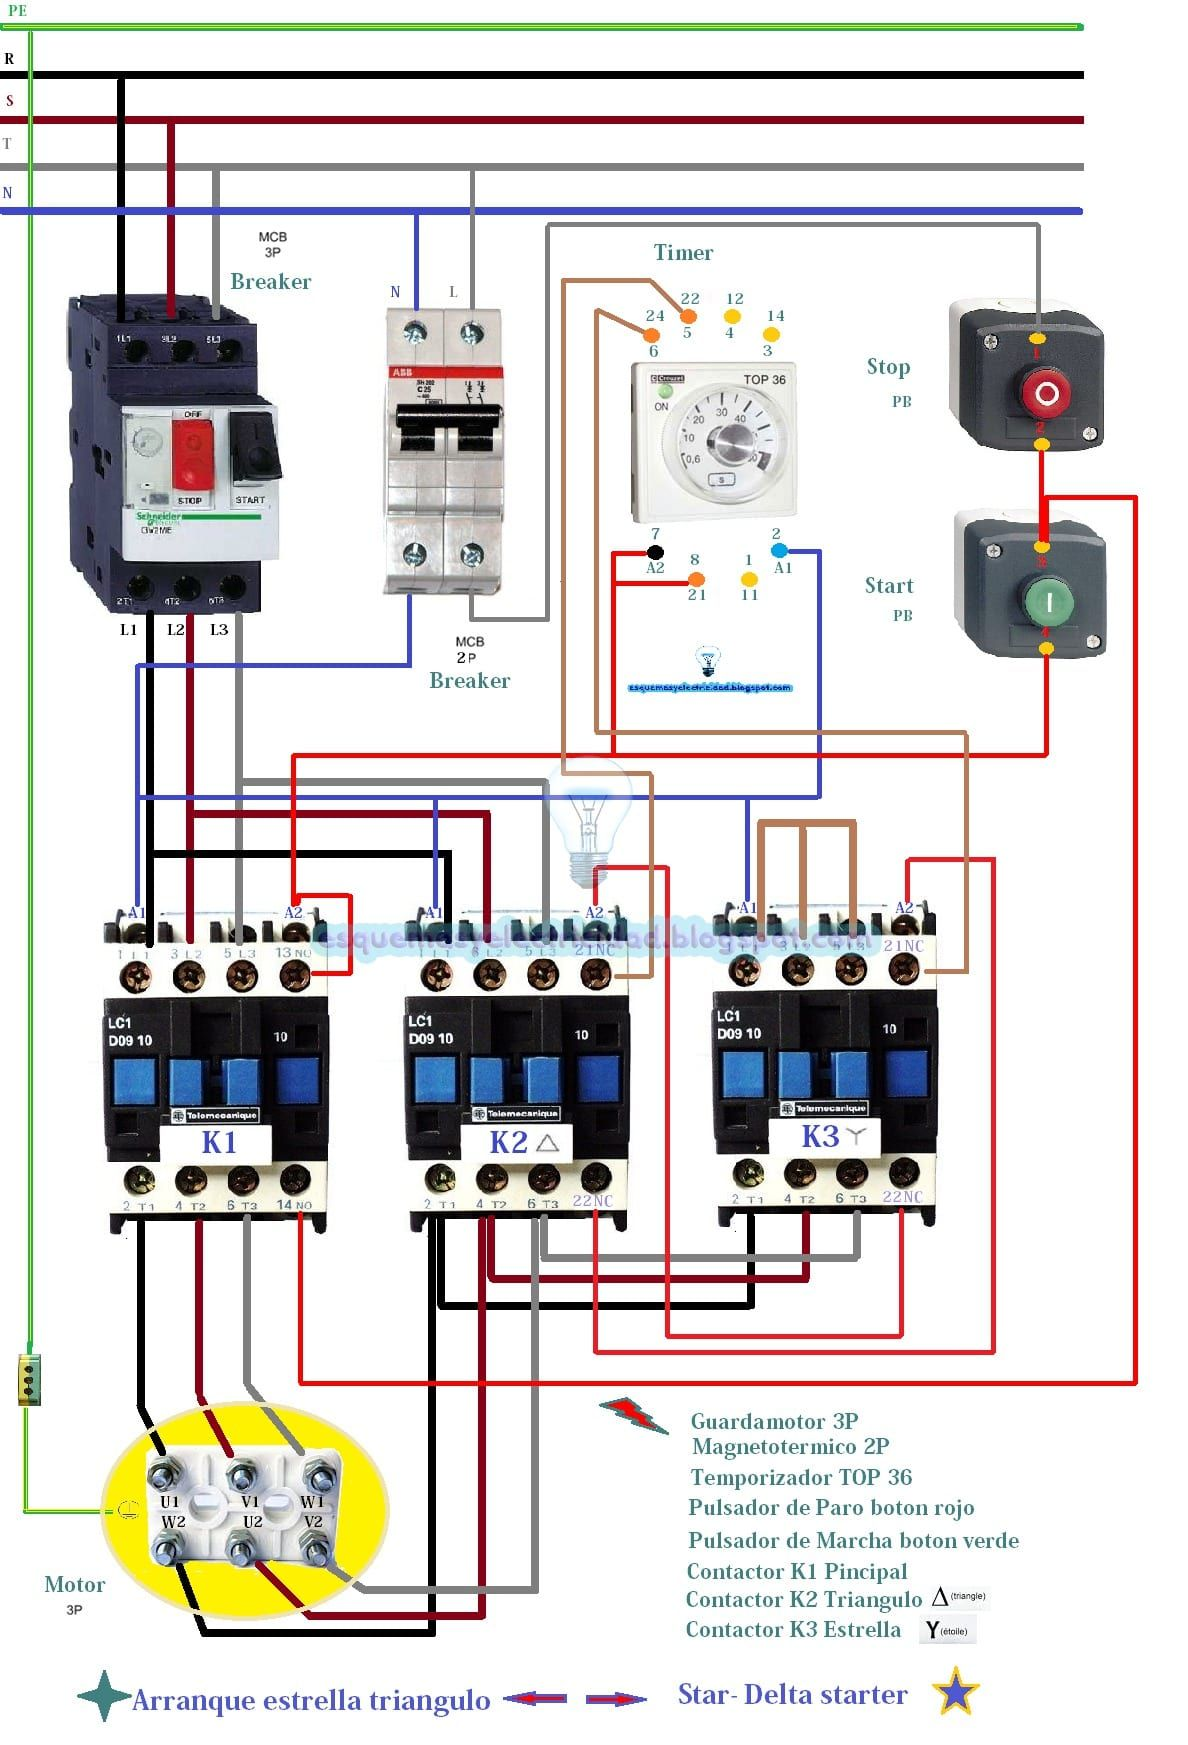 Fantastic Bass Pickup Configurations Small Bulldog Car Wiring Diagrams Regular 2 Wire Humbucker How To Connect Solar Panel To Inverter Diagram Young The Solar System Diagram BlackHow To Wire A New Breaker 3 Phase Motor Wiring Diagrams Electrical Info PICS | Non Stop ..